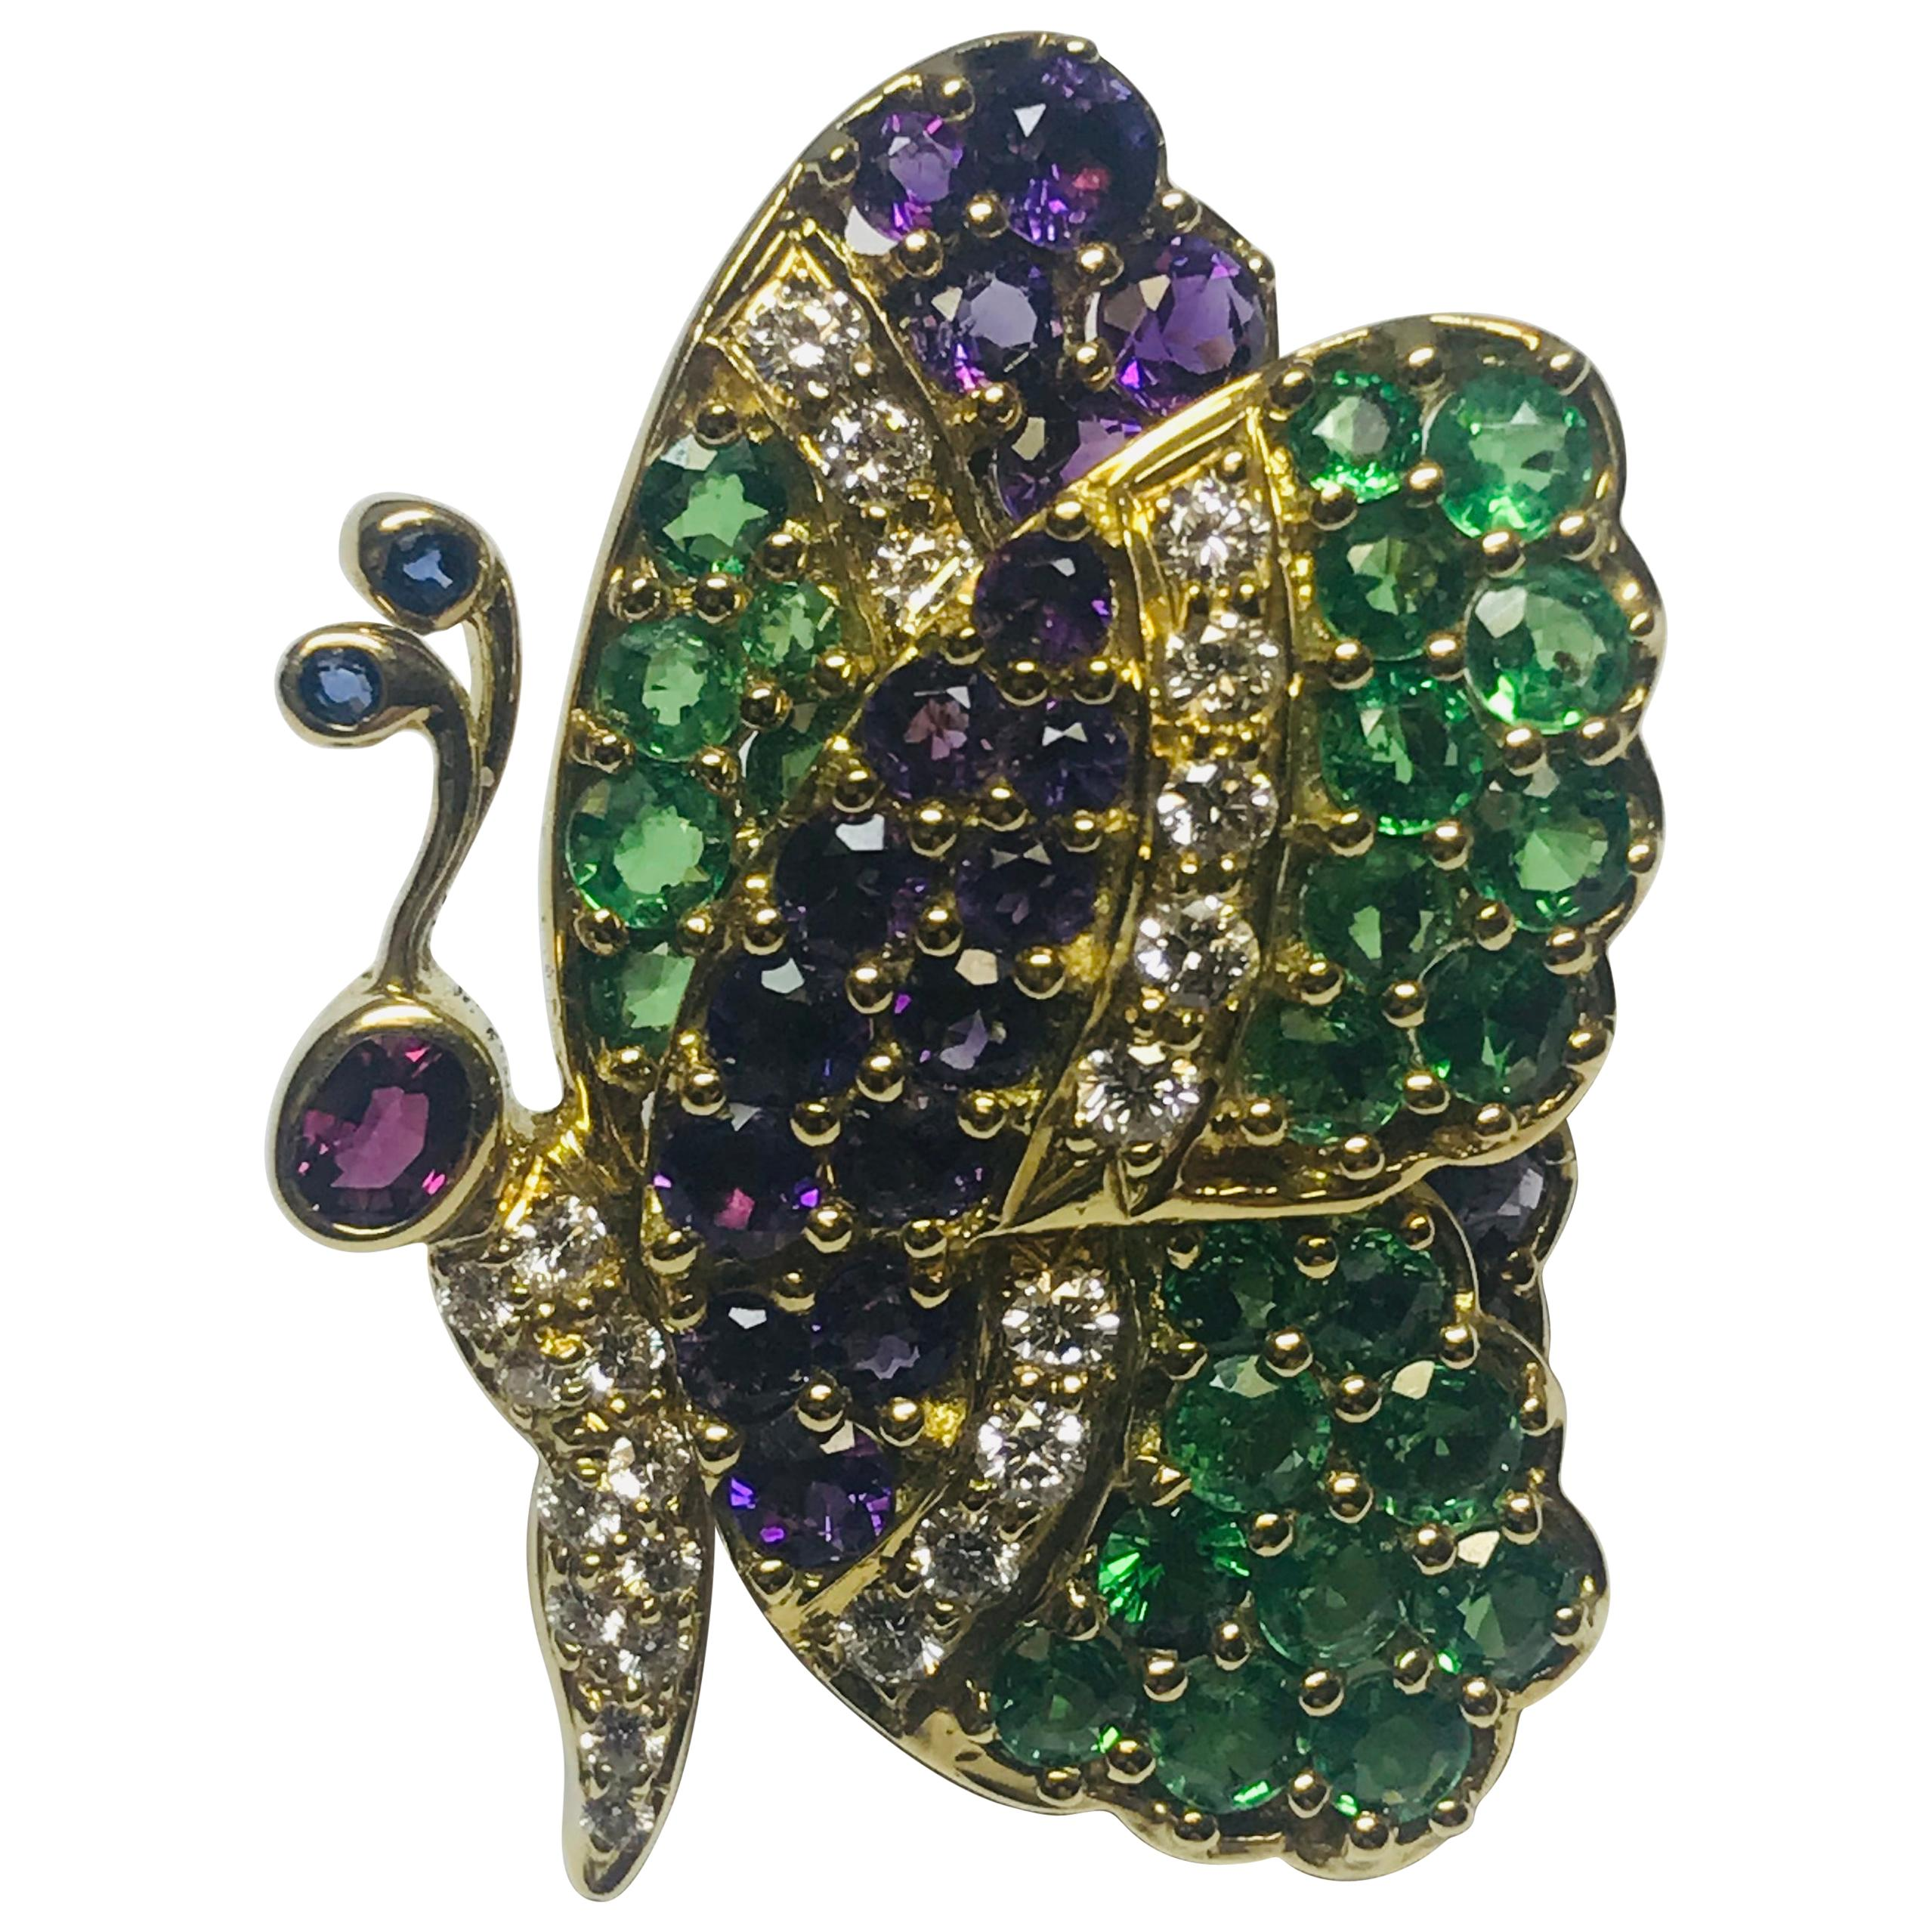 1b9f51b41 Antique Amethyst Brooches - 196 For Sale at 1stdibs